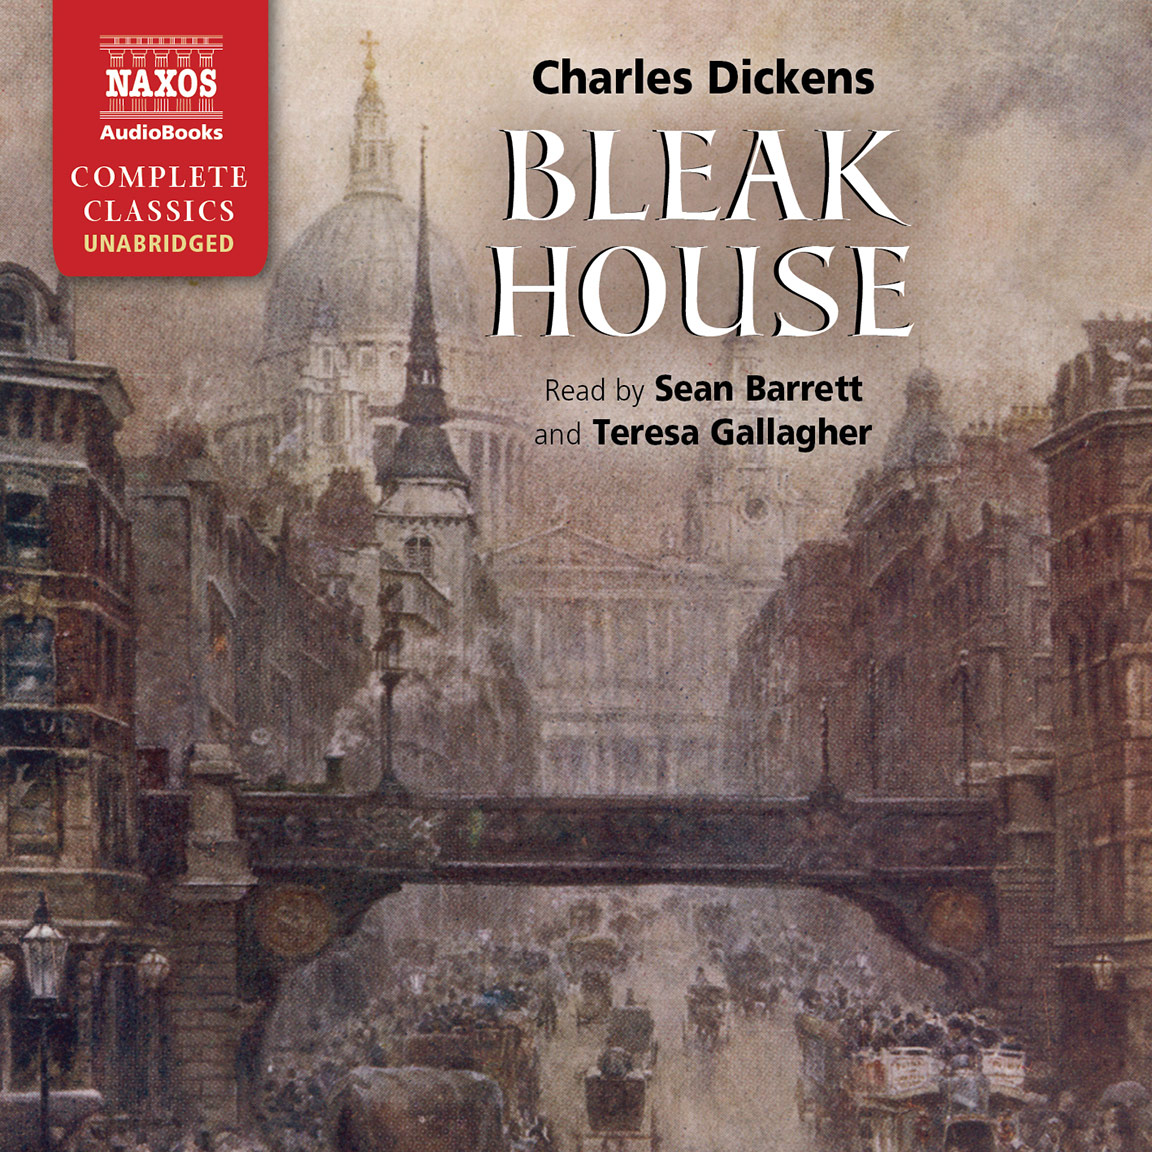 essays on charles dickens Free essay on charles dickens' use of foreshadowing in tale of two c available totally free at echeatcom, the largest free essay community.